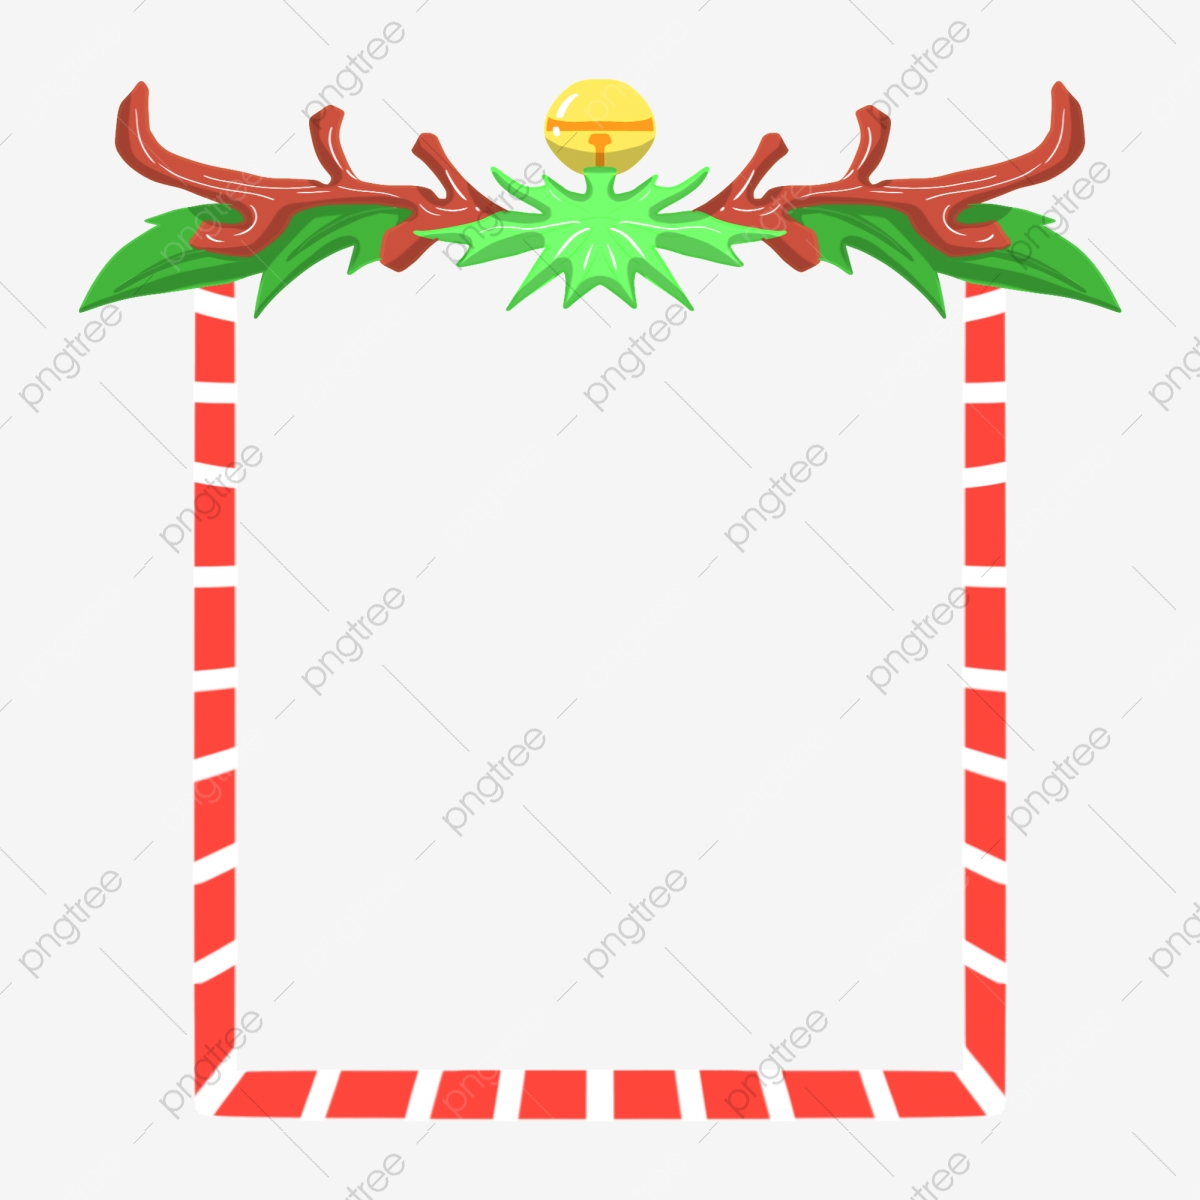 Christmas Border Illustration Christmas Bell Border Yellow